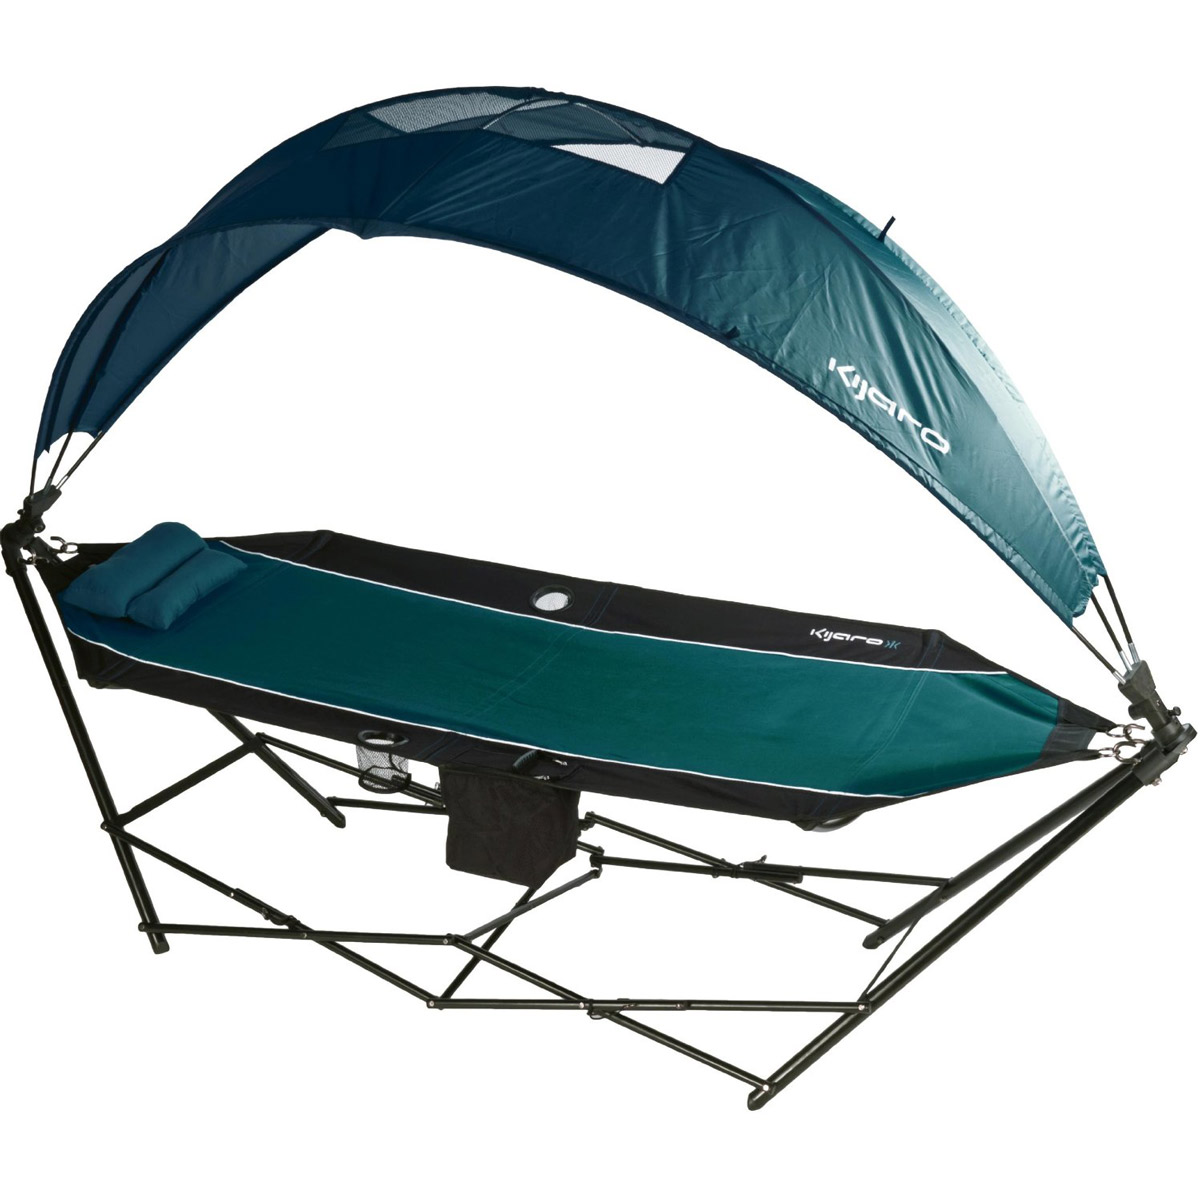 Portable Compact Canopy : Kijaro portable hammock with canopy and cooler the